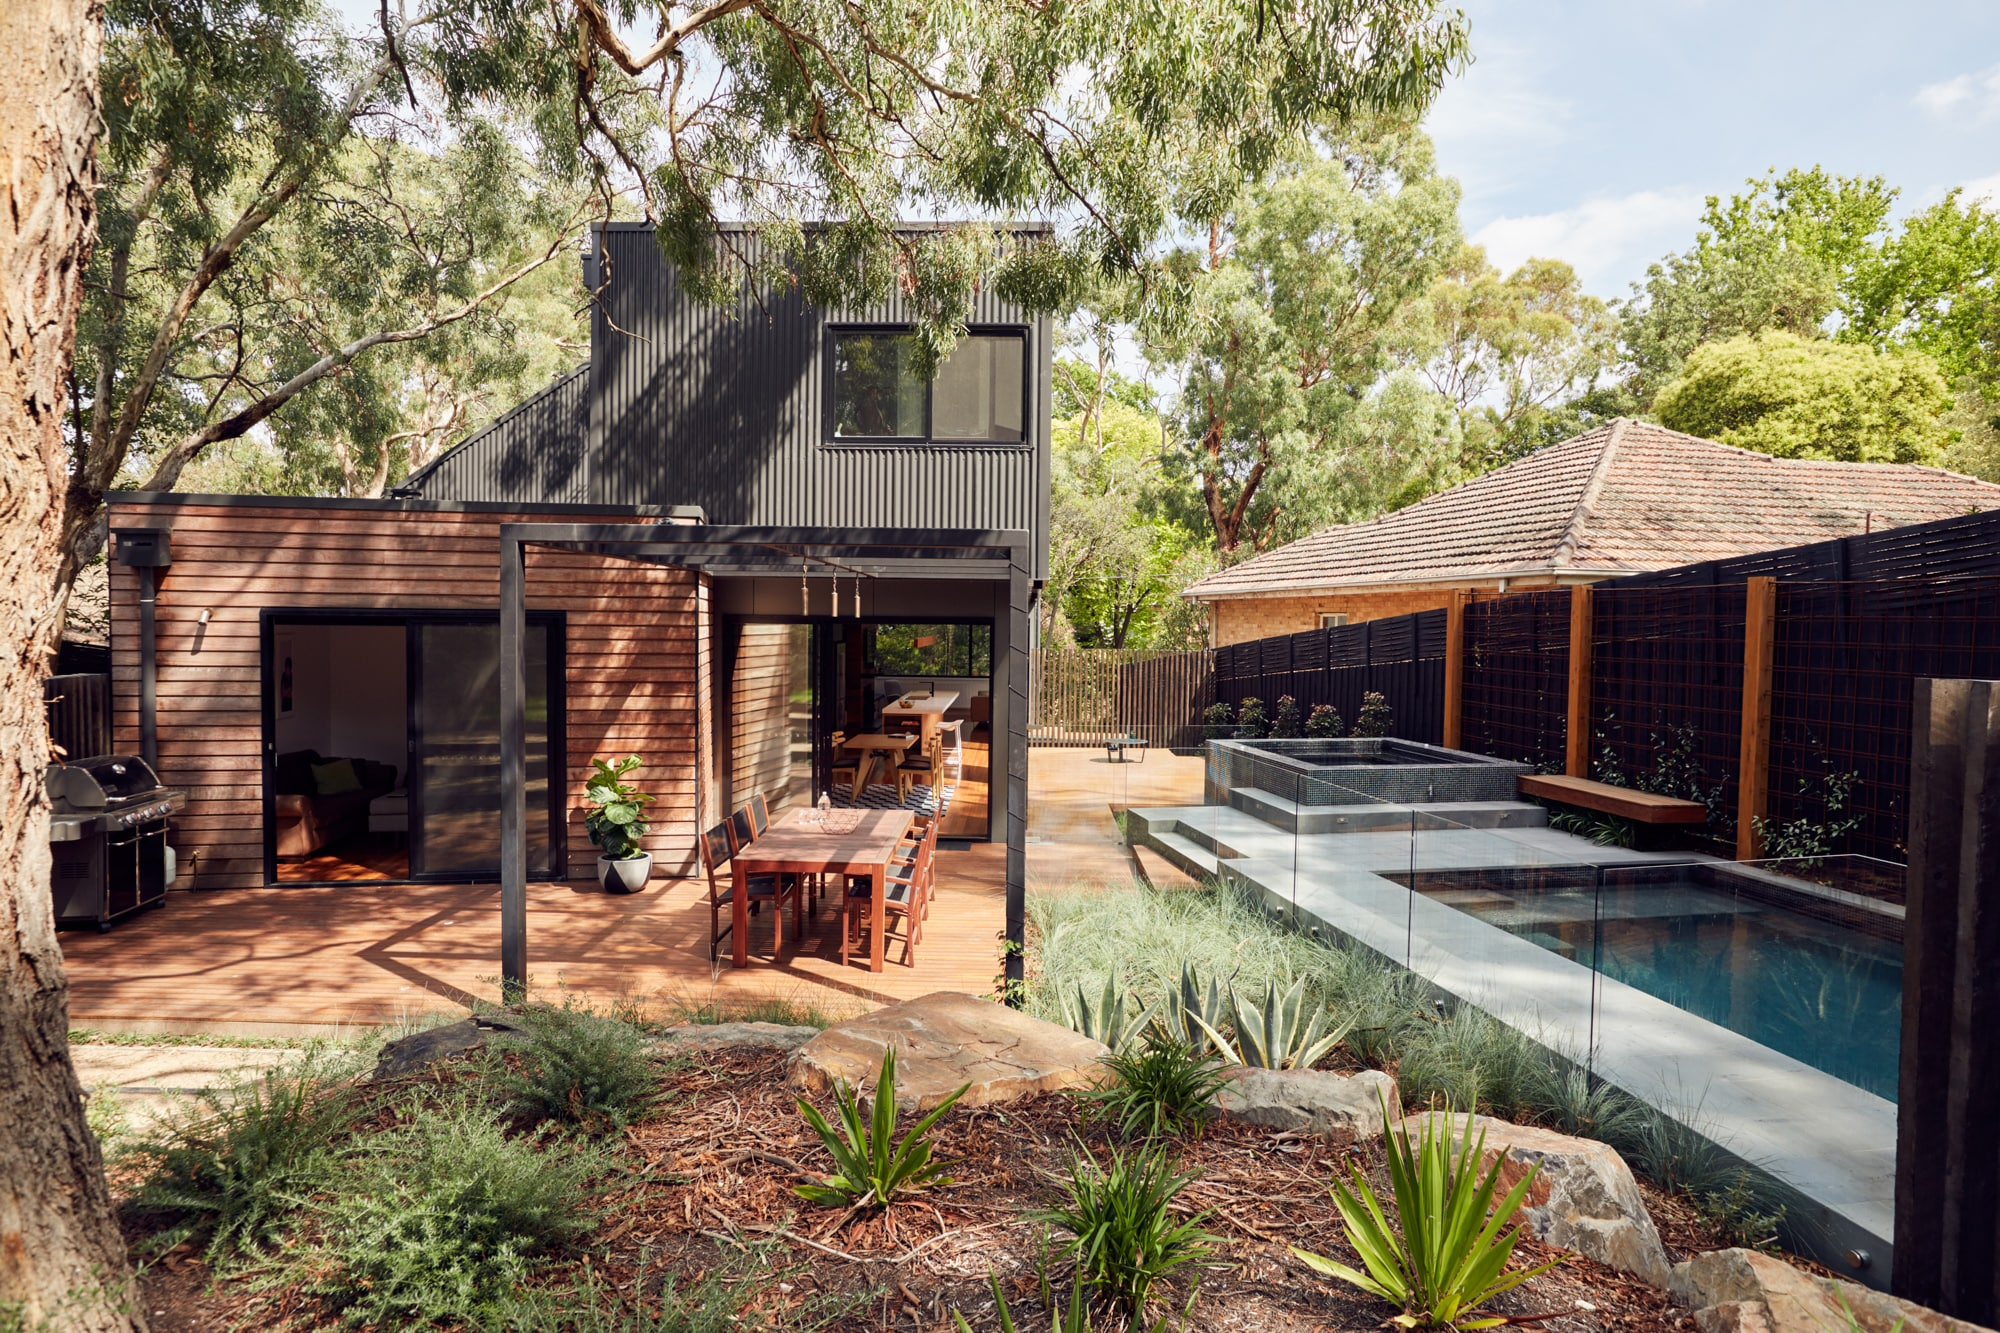 Gallery Of Blackburn House By Archiblox Local Australian Modular Architecture & Interiors Blackburn, Vic Image 6